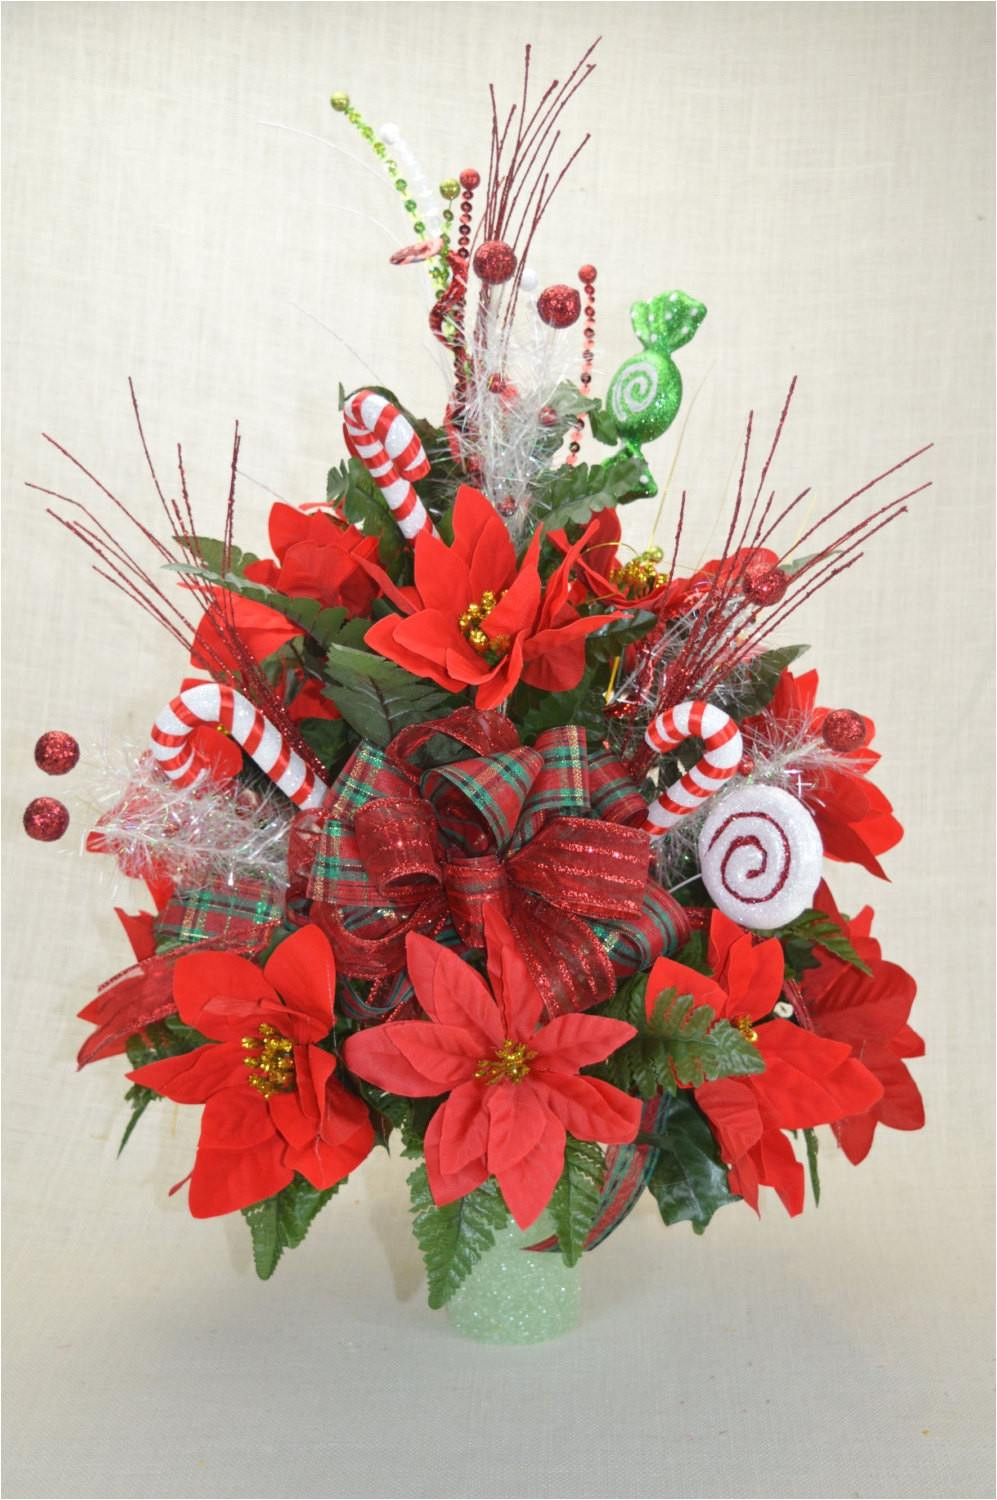 Round Vase Flower Arrangements Of 33 Awesome Of Christmas Arrangements Ideas Christmas Decor Ideas with Regard to Cemetery Christmas Decoration Ideas Vases tombstone foreversafe Cemetery Vase Product Informationi 0d